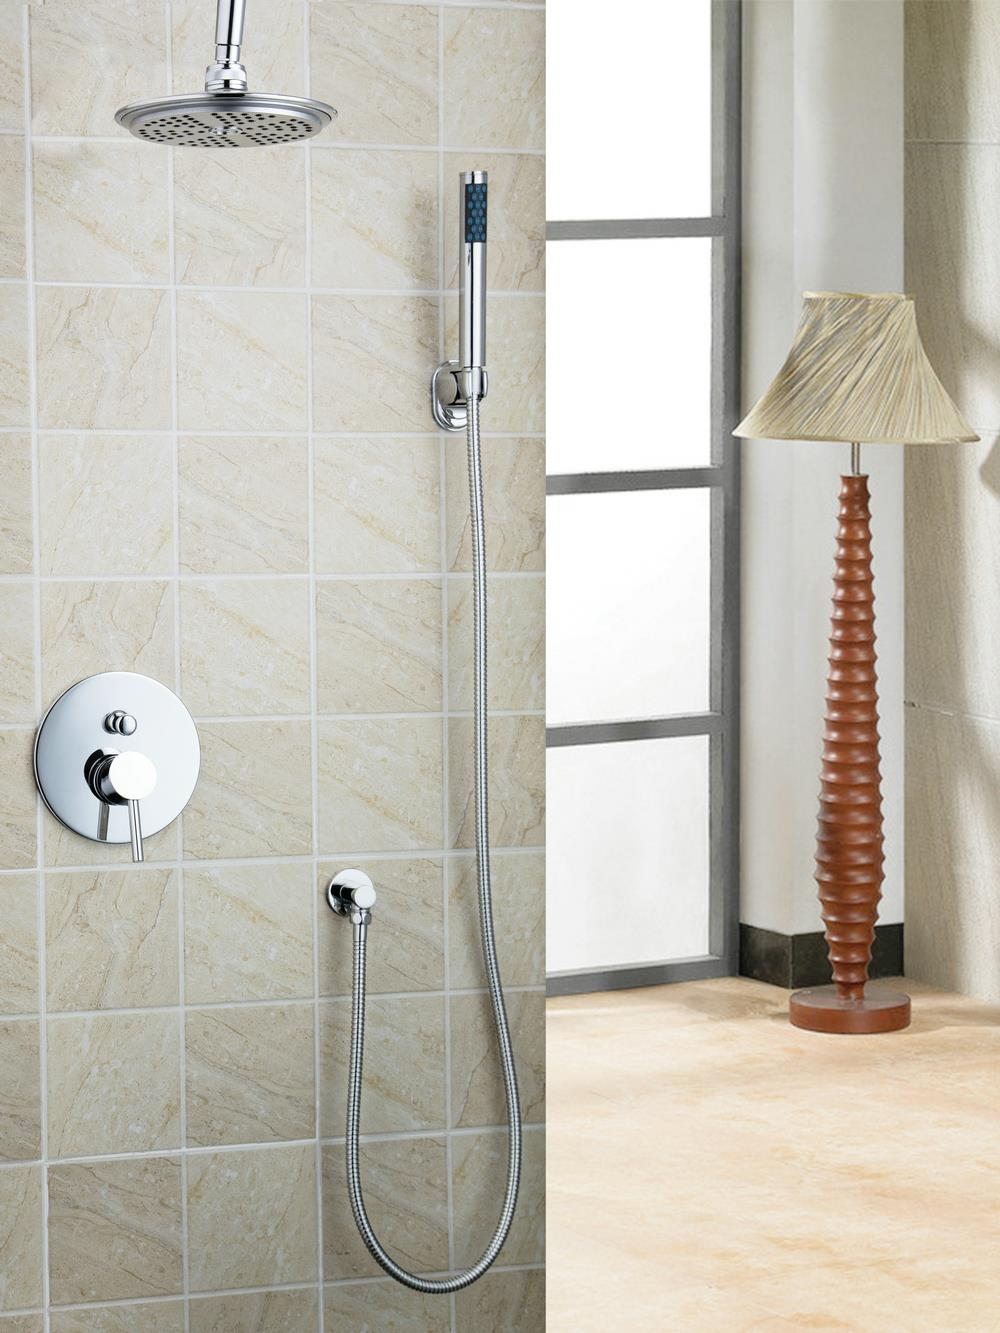 Bathroom rain showers - Hello Modern Bathroom Rain Shower Banho De Chuveiro Set 8 Wall Mount Faucet Tap Shower